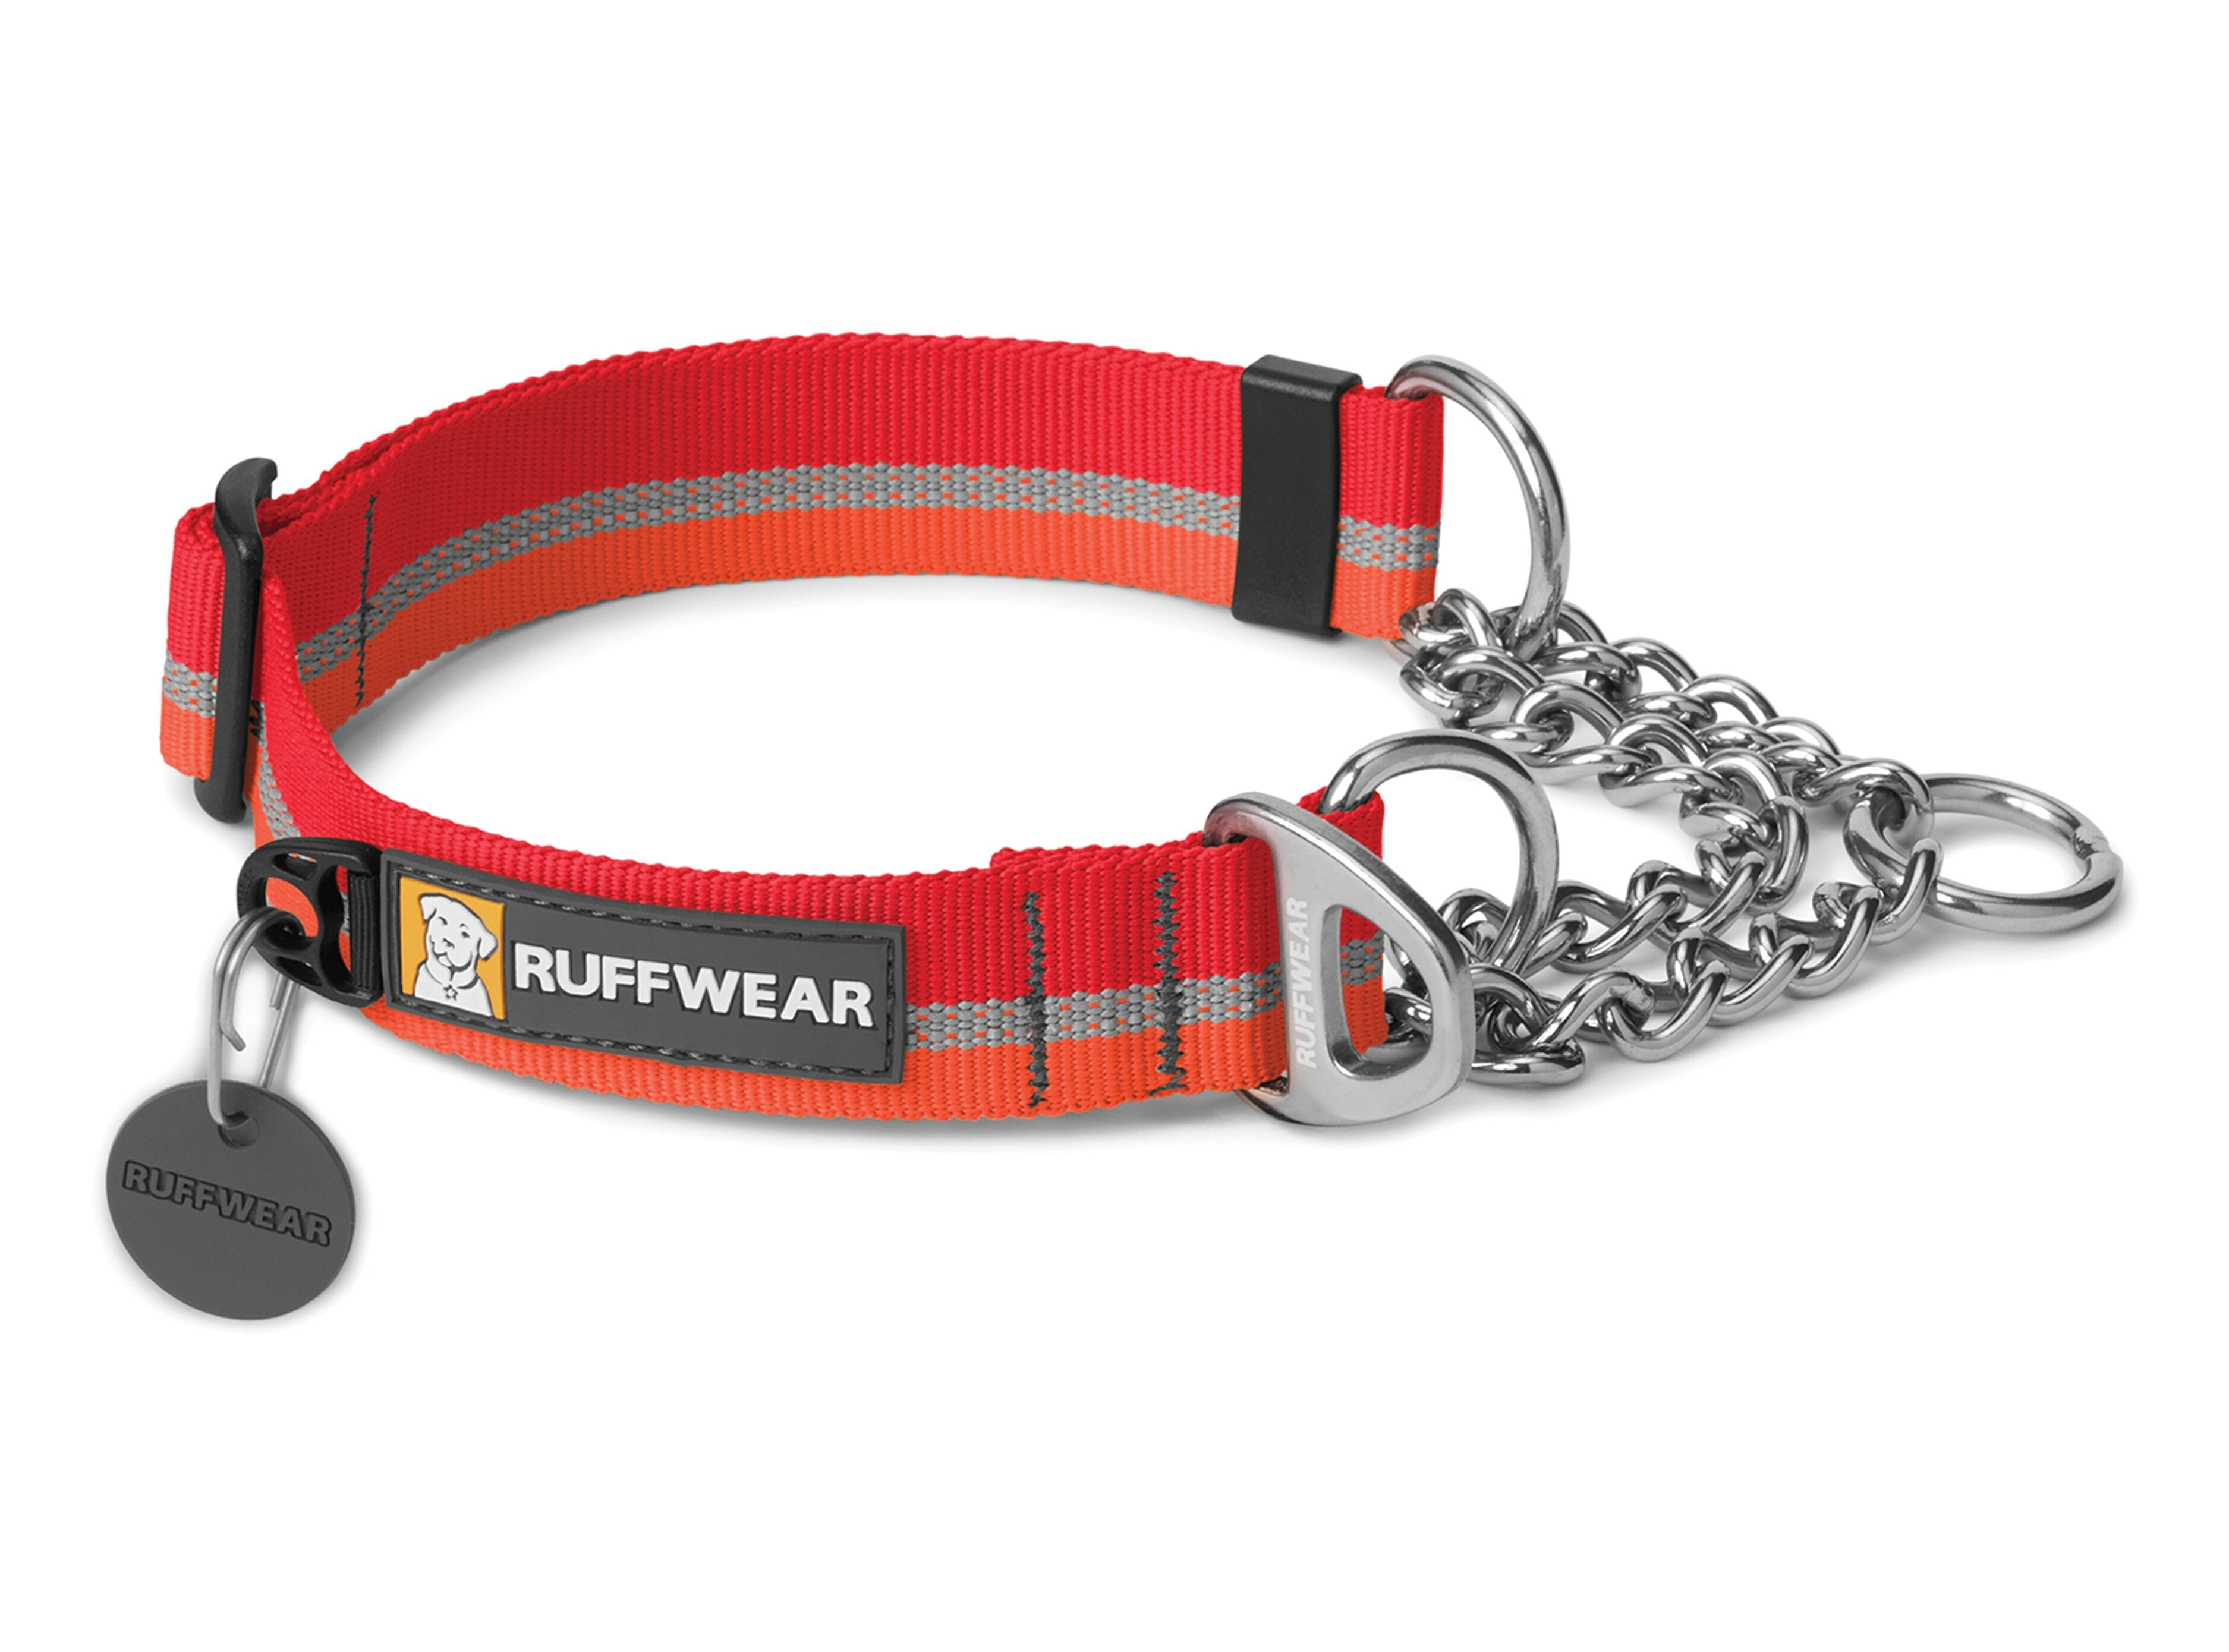 ruffwear- Chain Reaction Coleira Vermelha